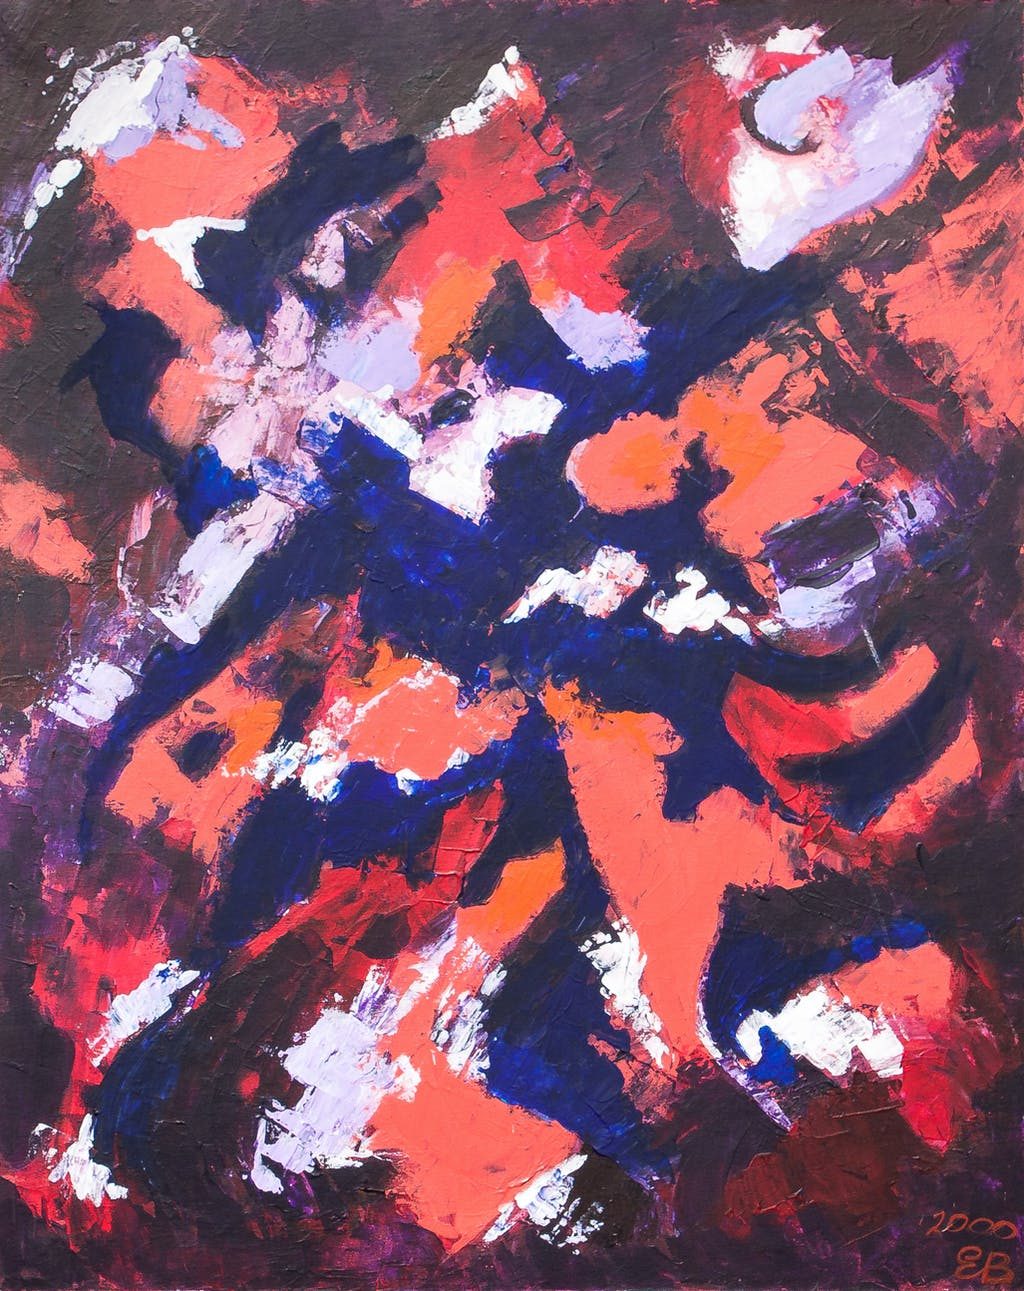 """Painting """"Fire Fantasy"""", painted by Elena Birkenwald in 2001"""